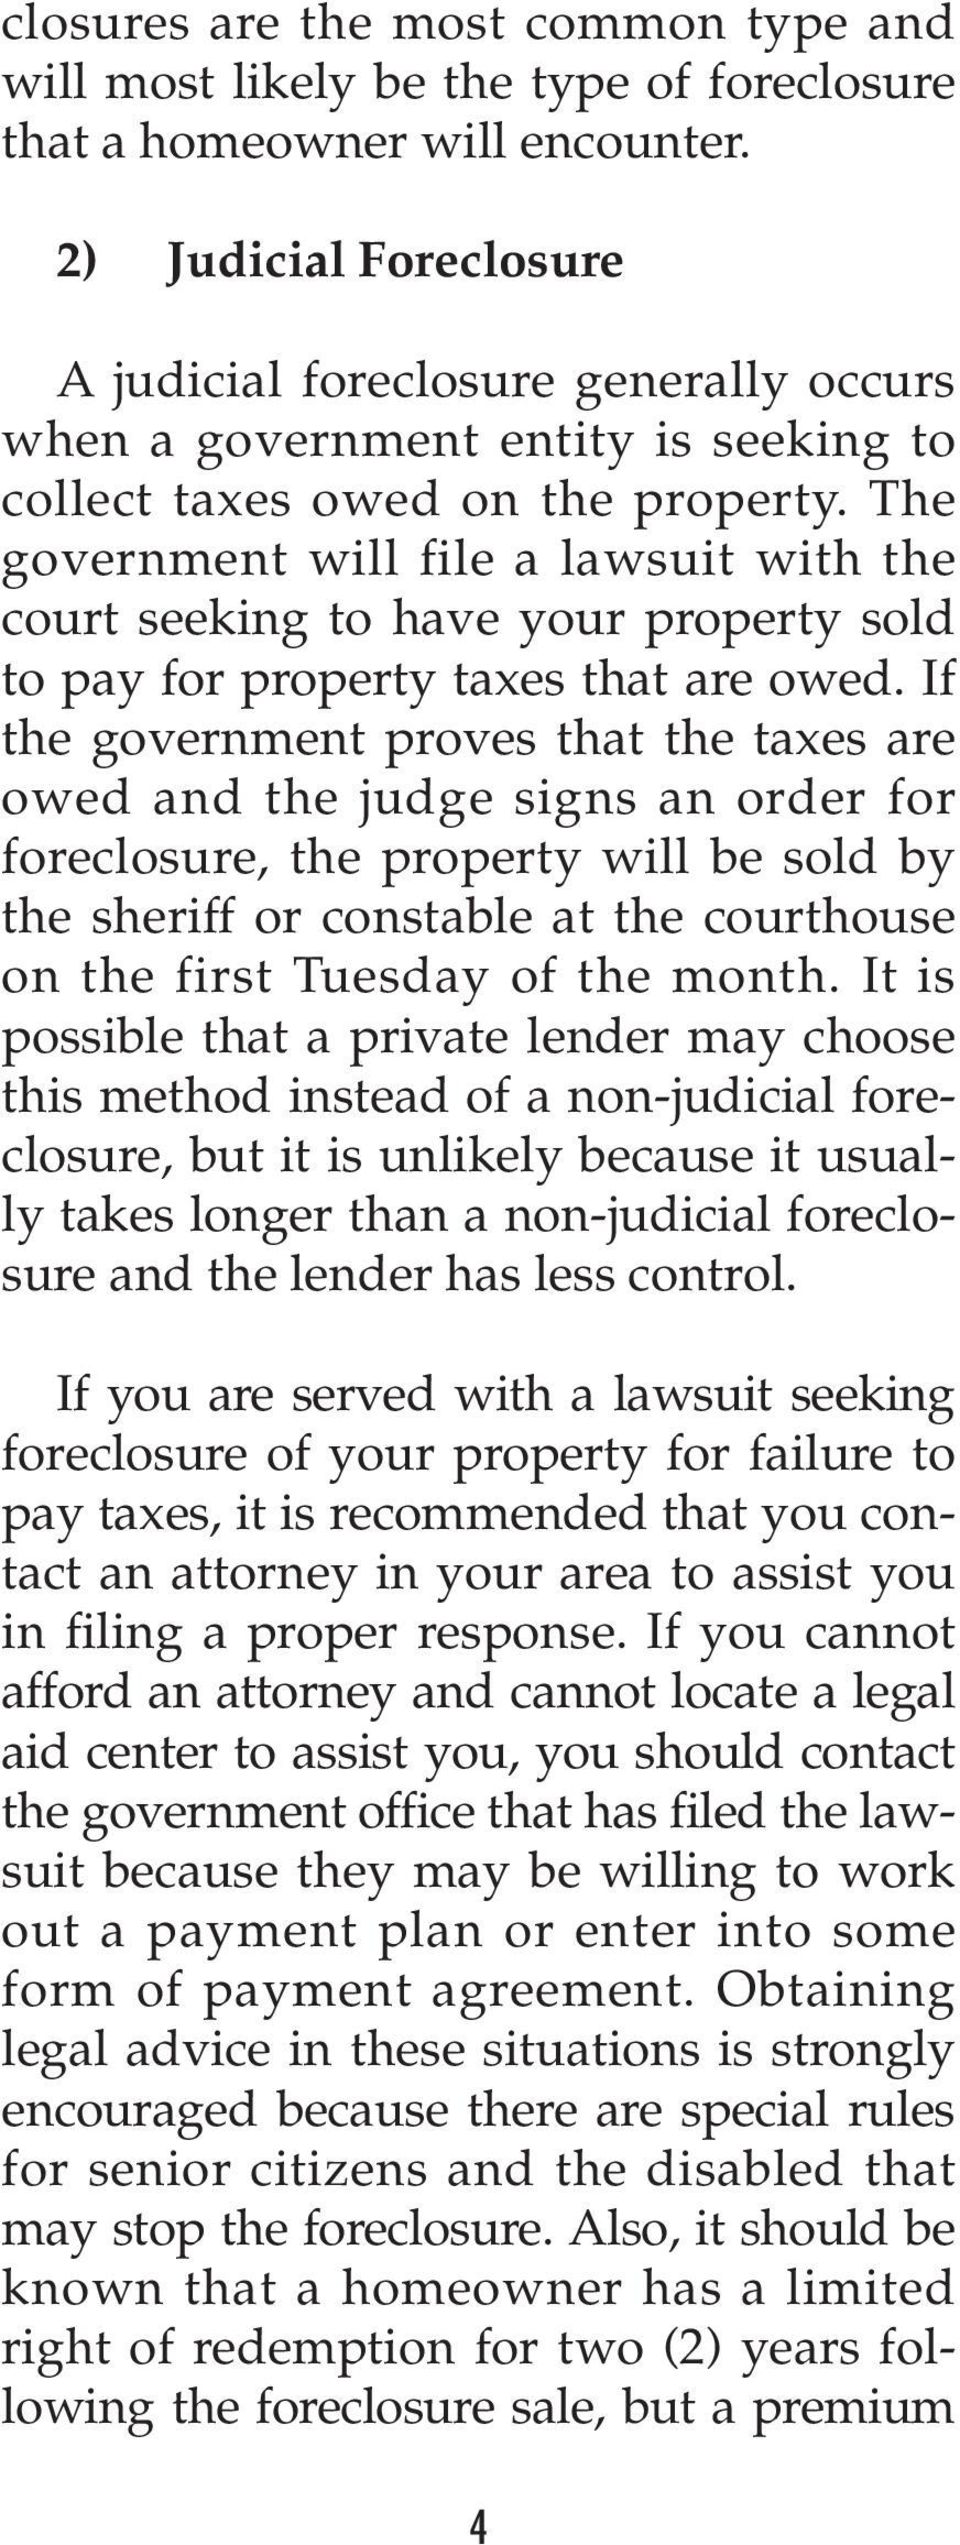 The government will file a lawsuit with the court seeking to have your property sold to pay for property taxes that are owed.